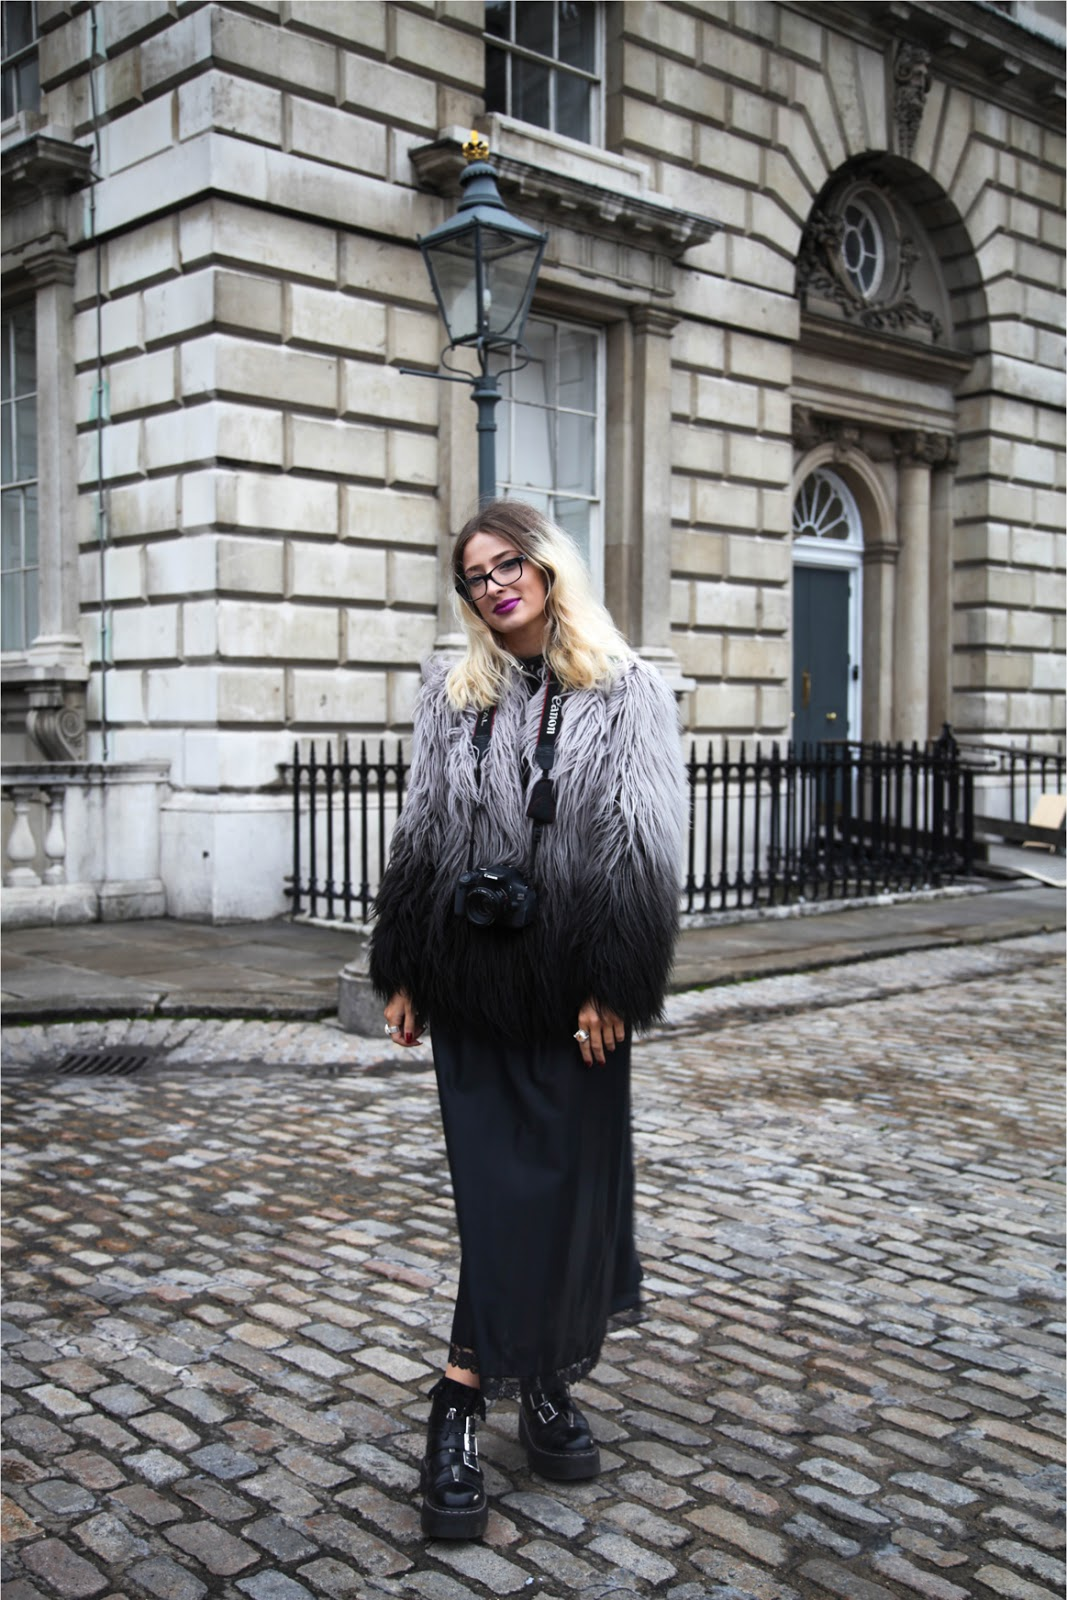 ombre fur jacket and hair, maxi skirt and platform shoes